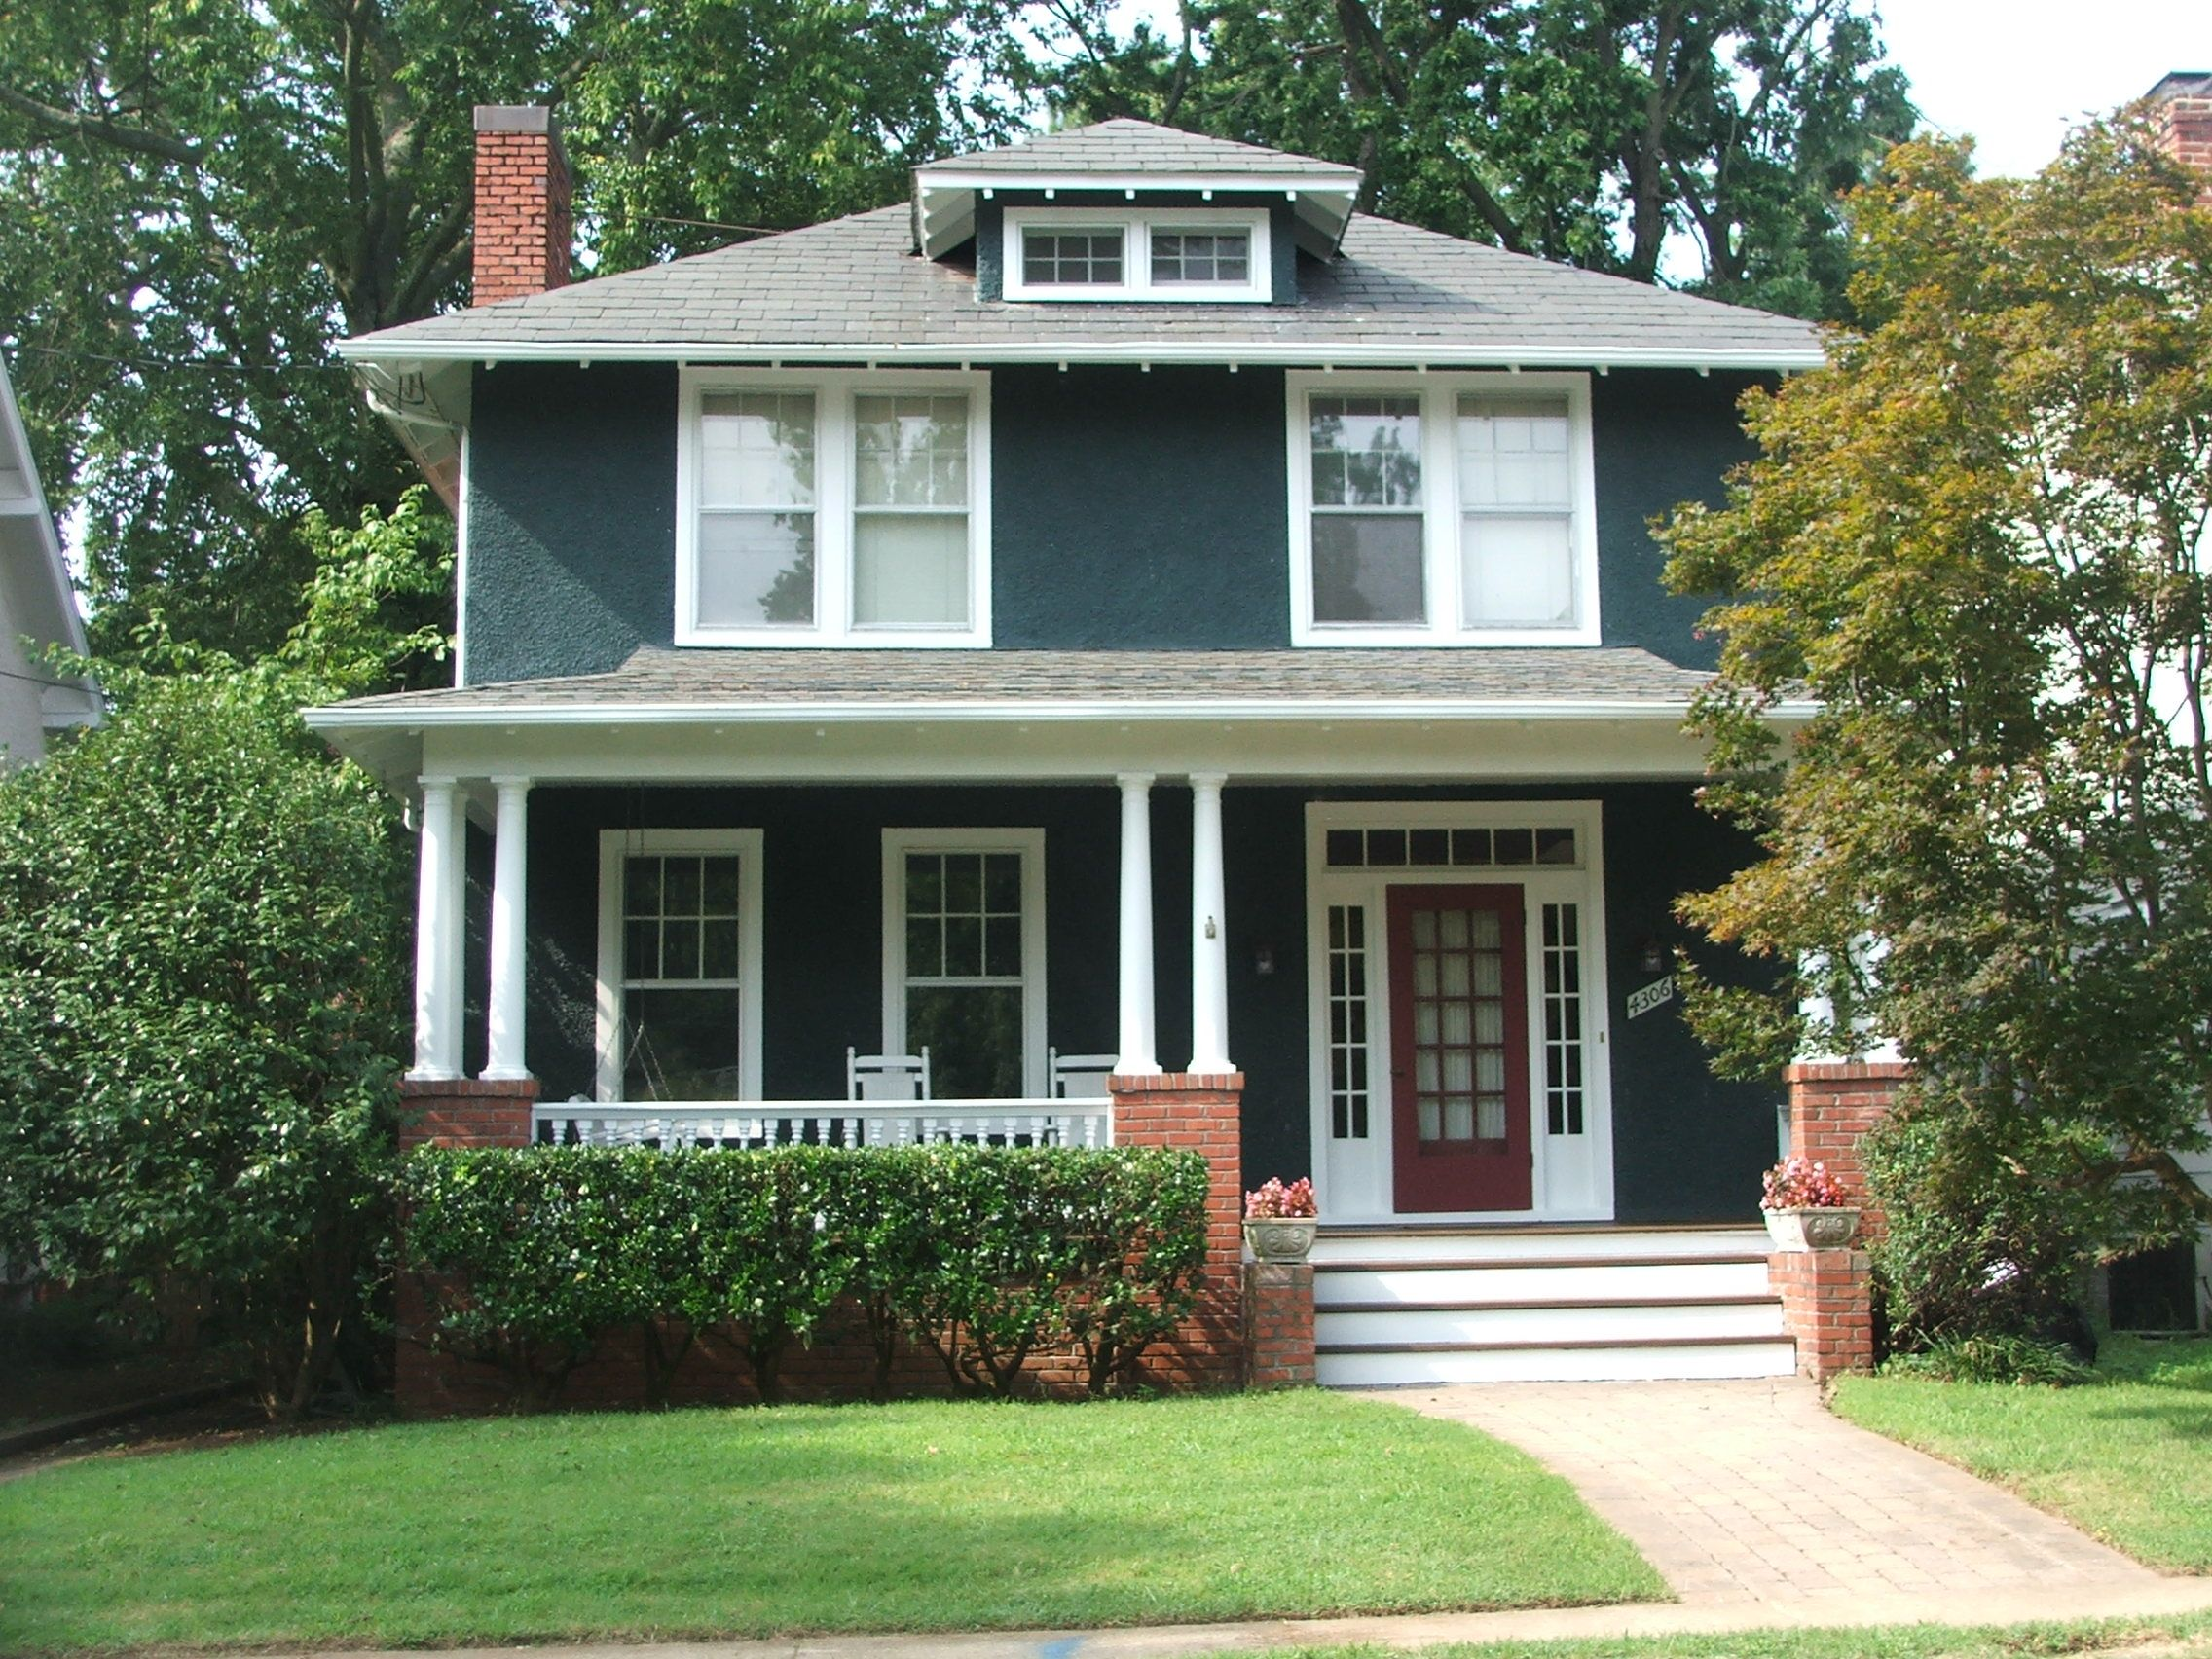 Diy idea for old suitcase american houses front porches for American house styles